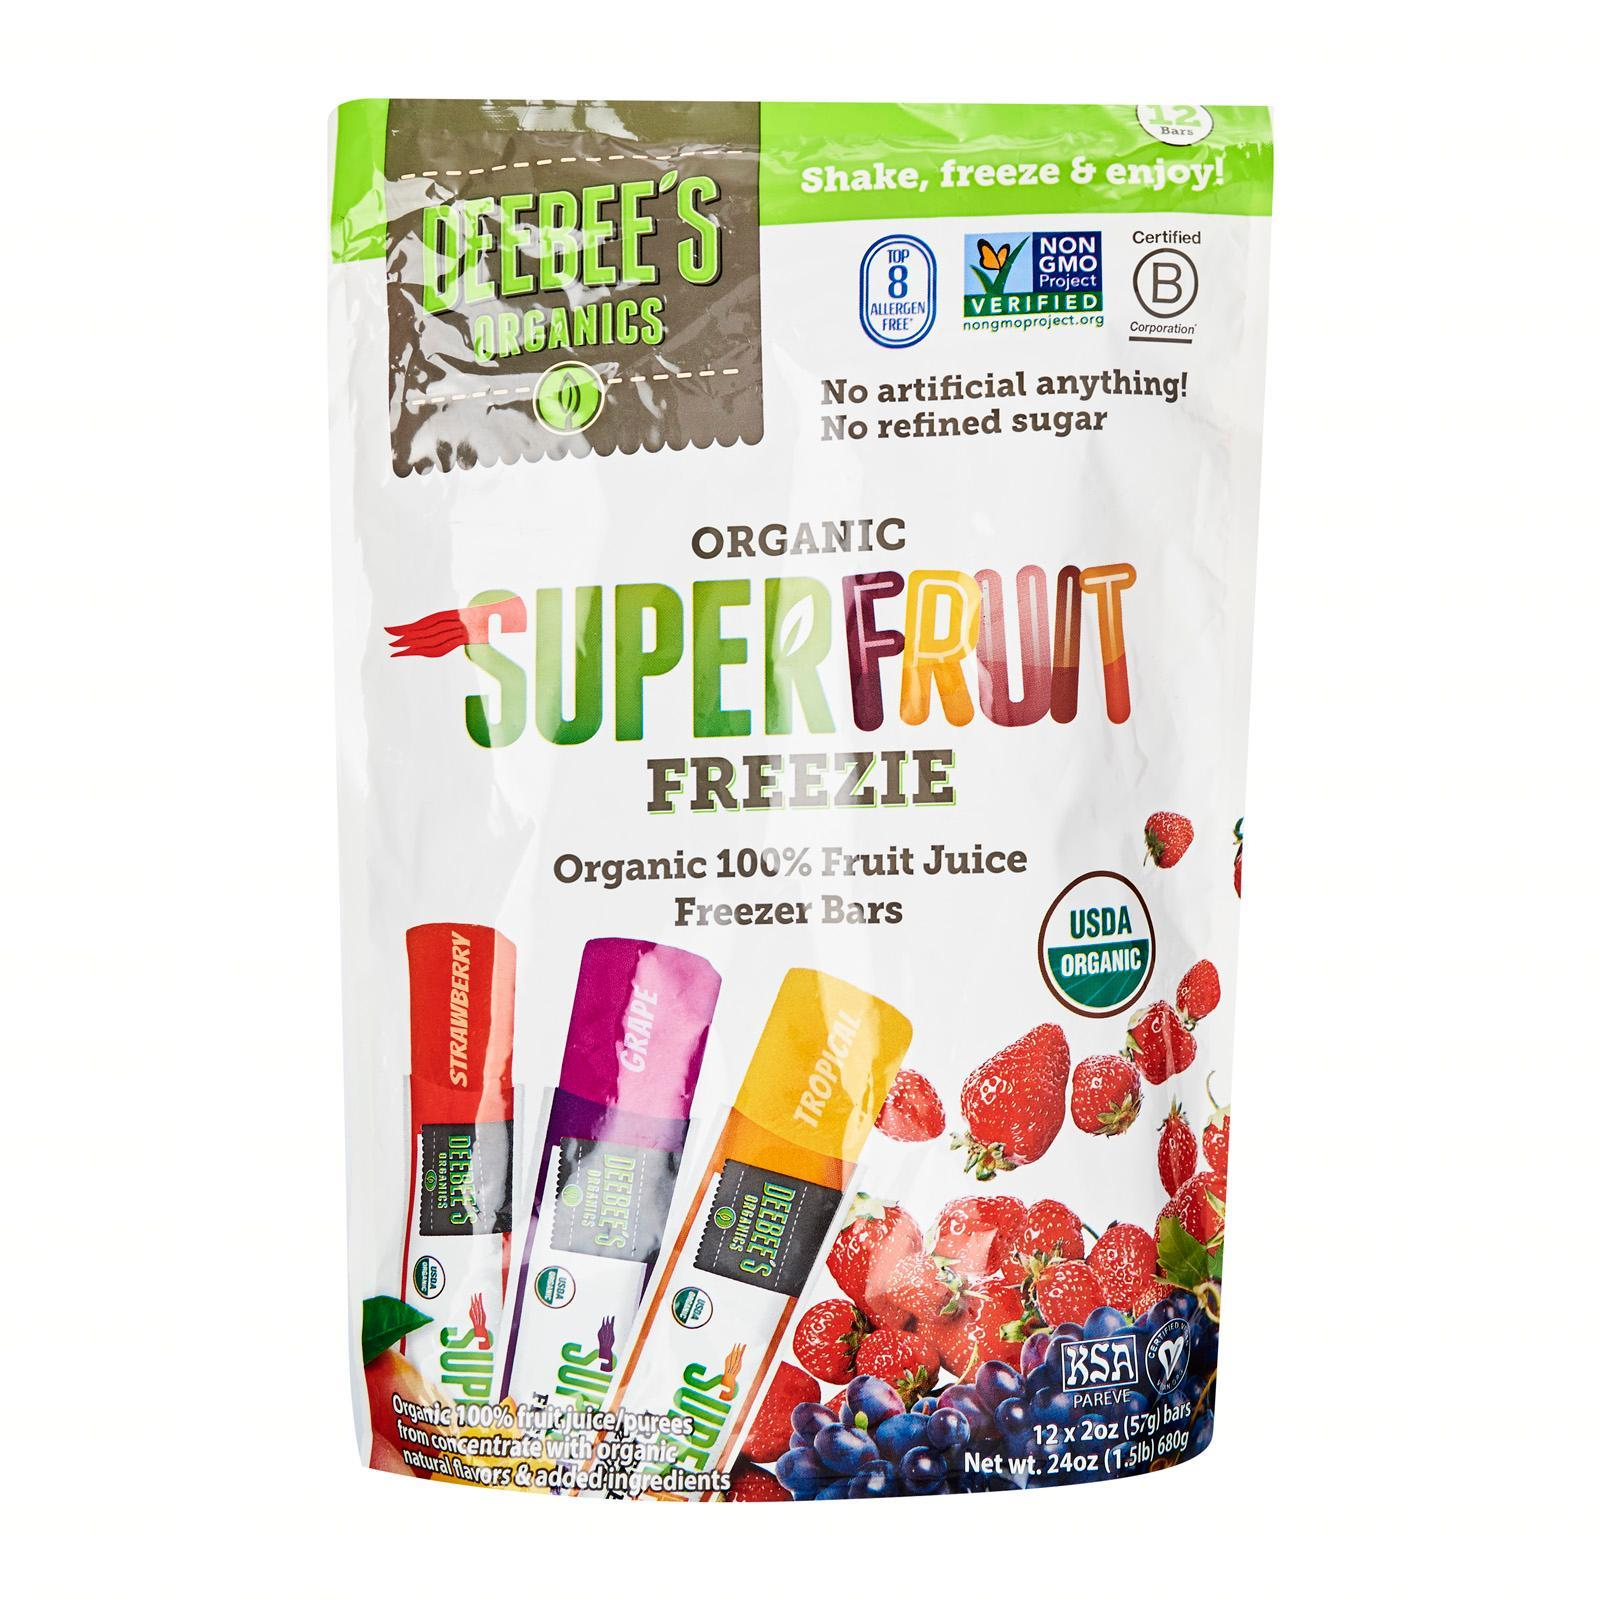 Deebee's Organic Super Fruit Freezies - By Wholesome Harvest